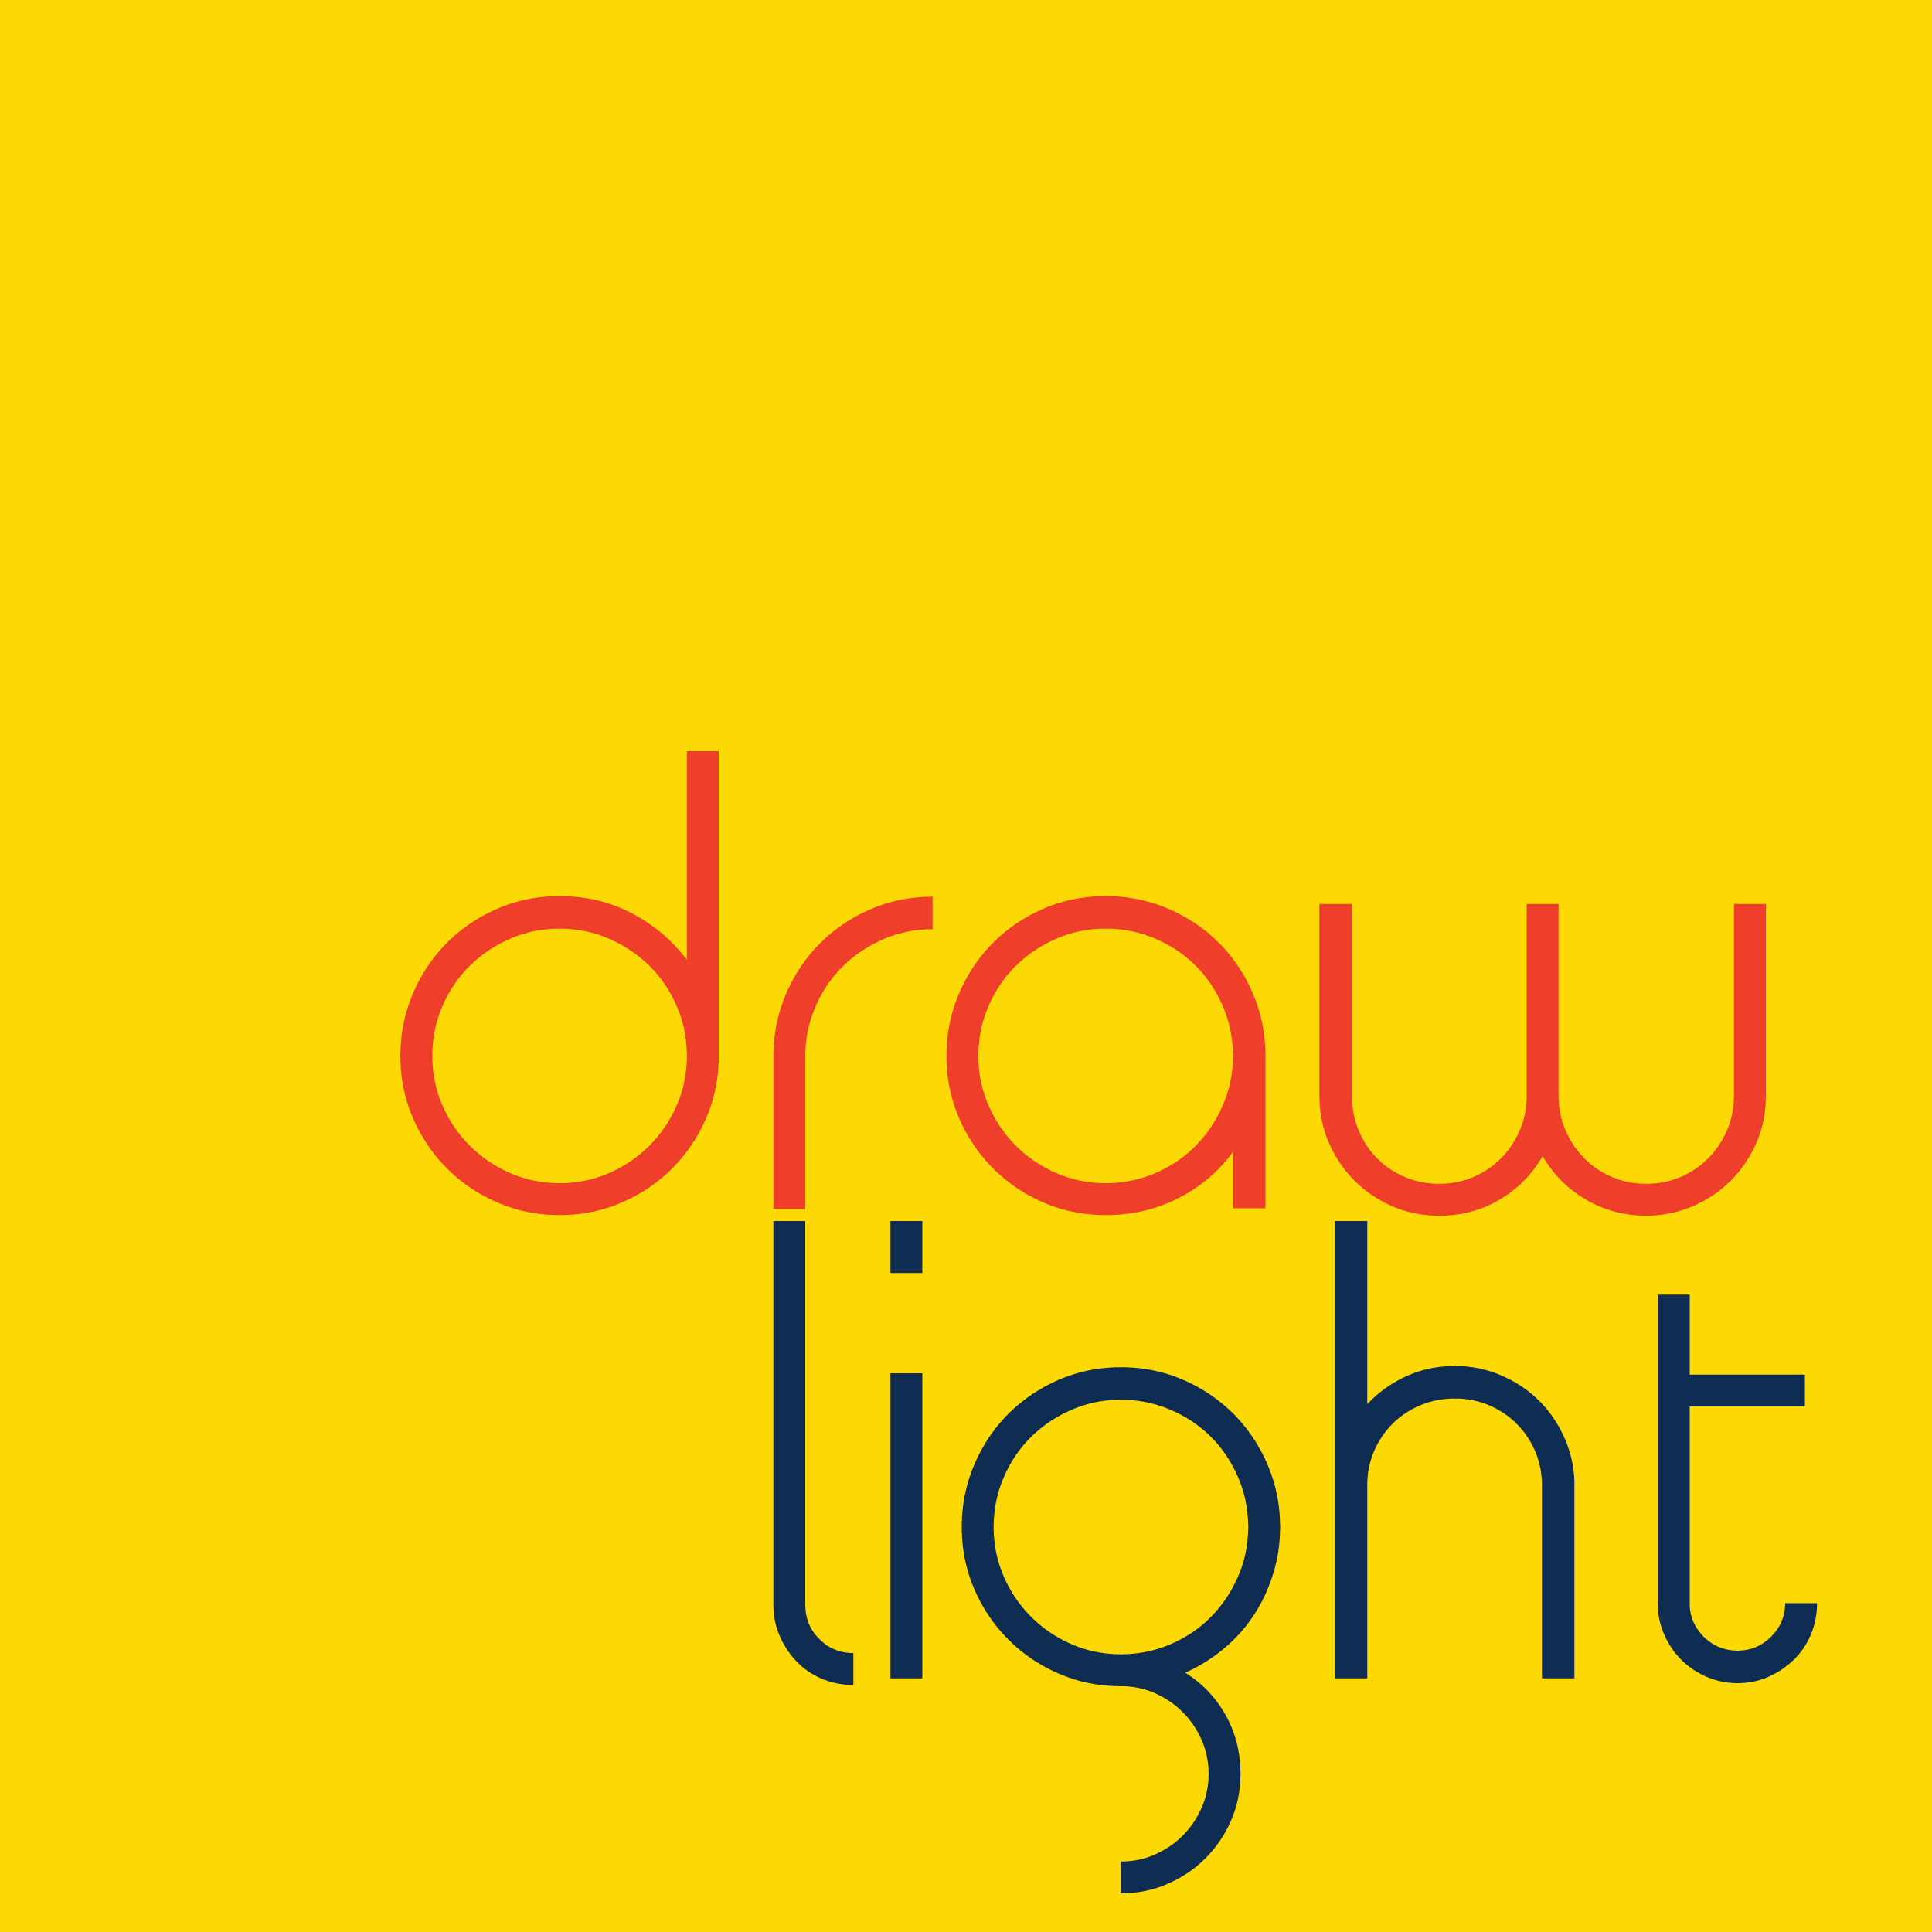 DrawLight.net